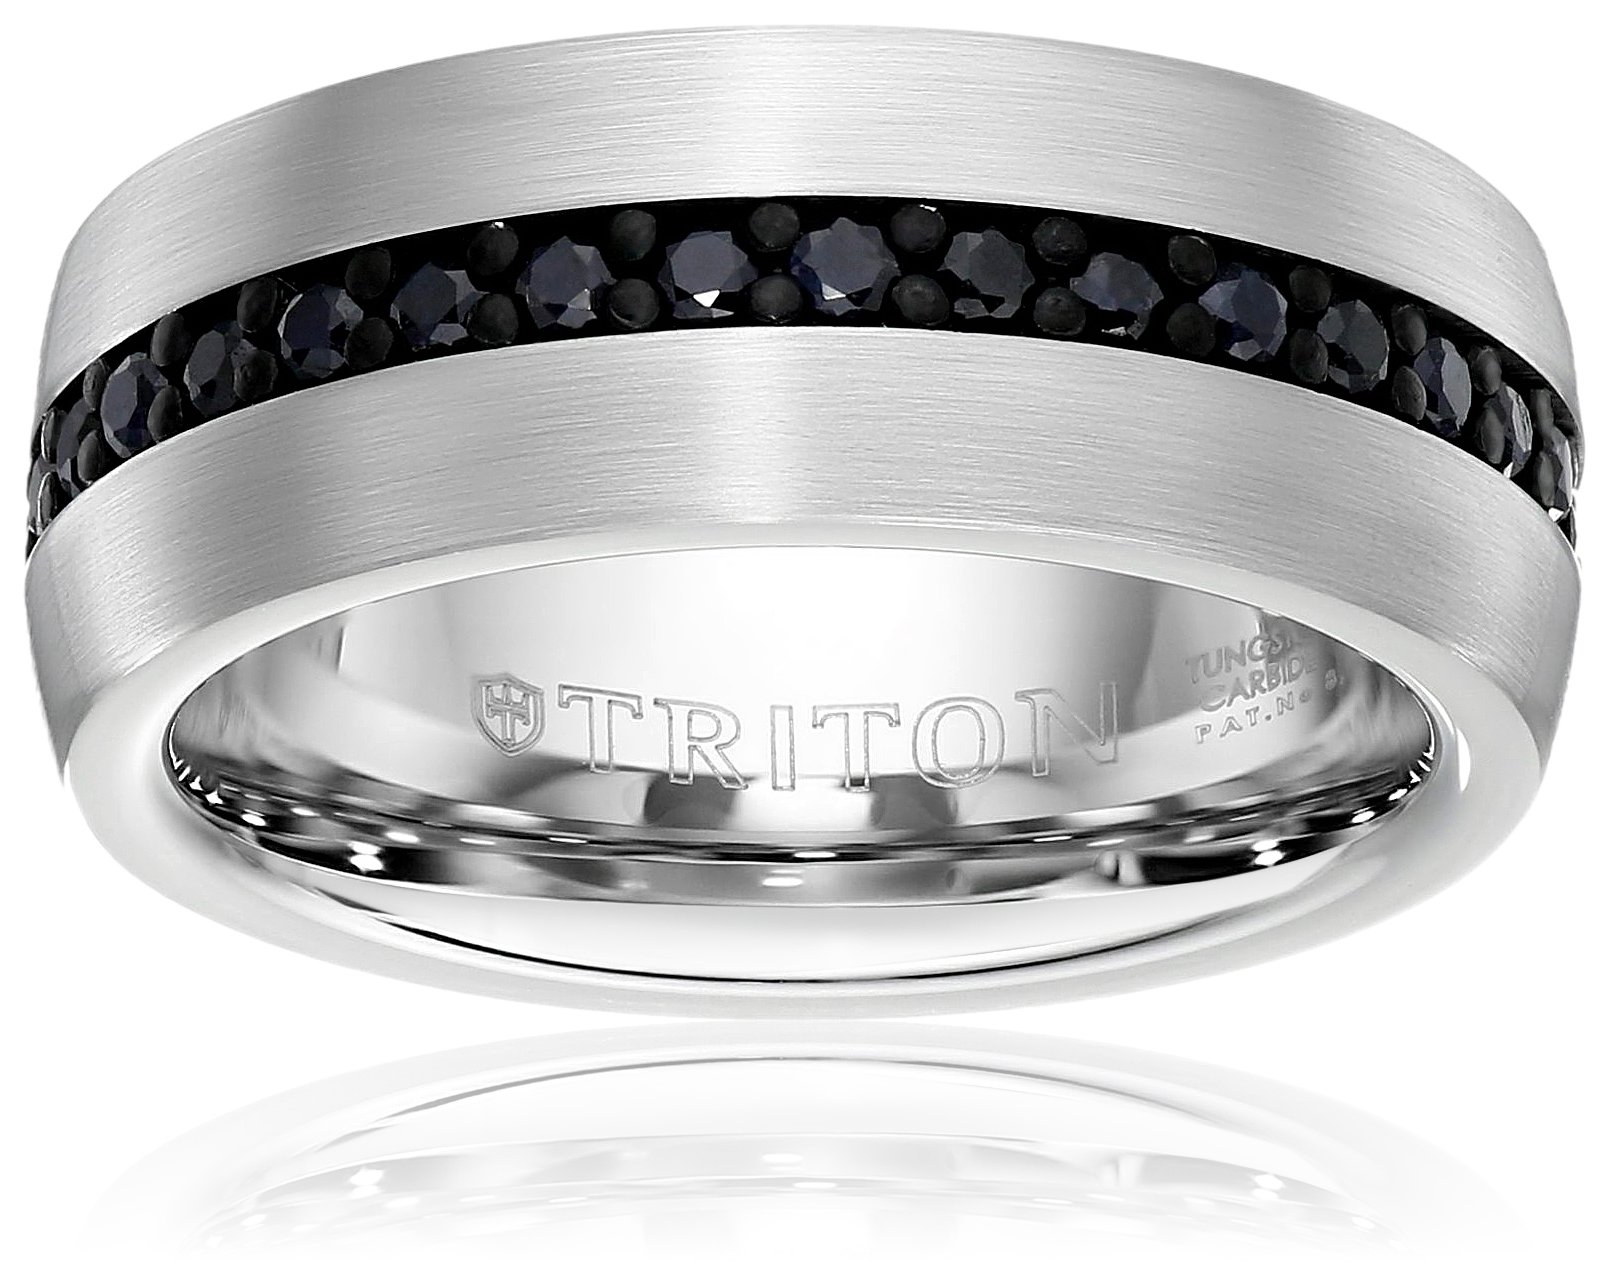 Triton Men's Tungsten 8mm Black Sapphire Wedding Band (1cttw), Size 9